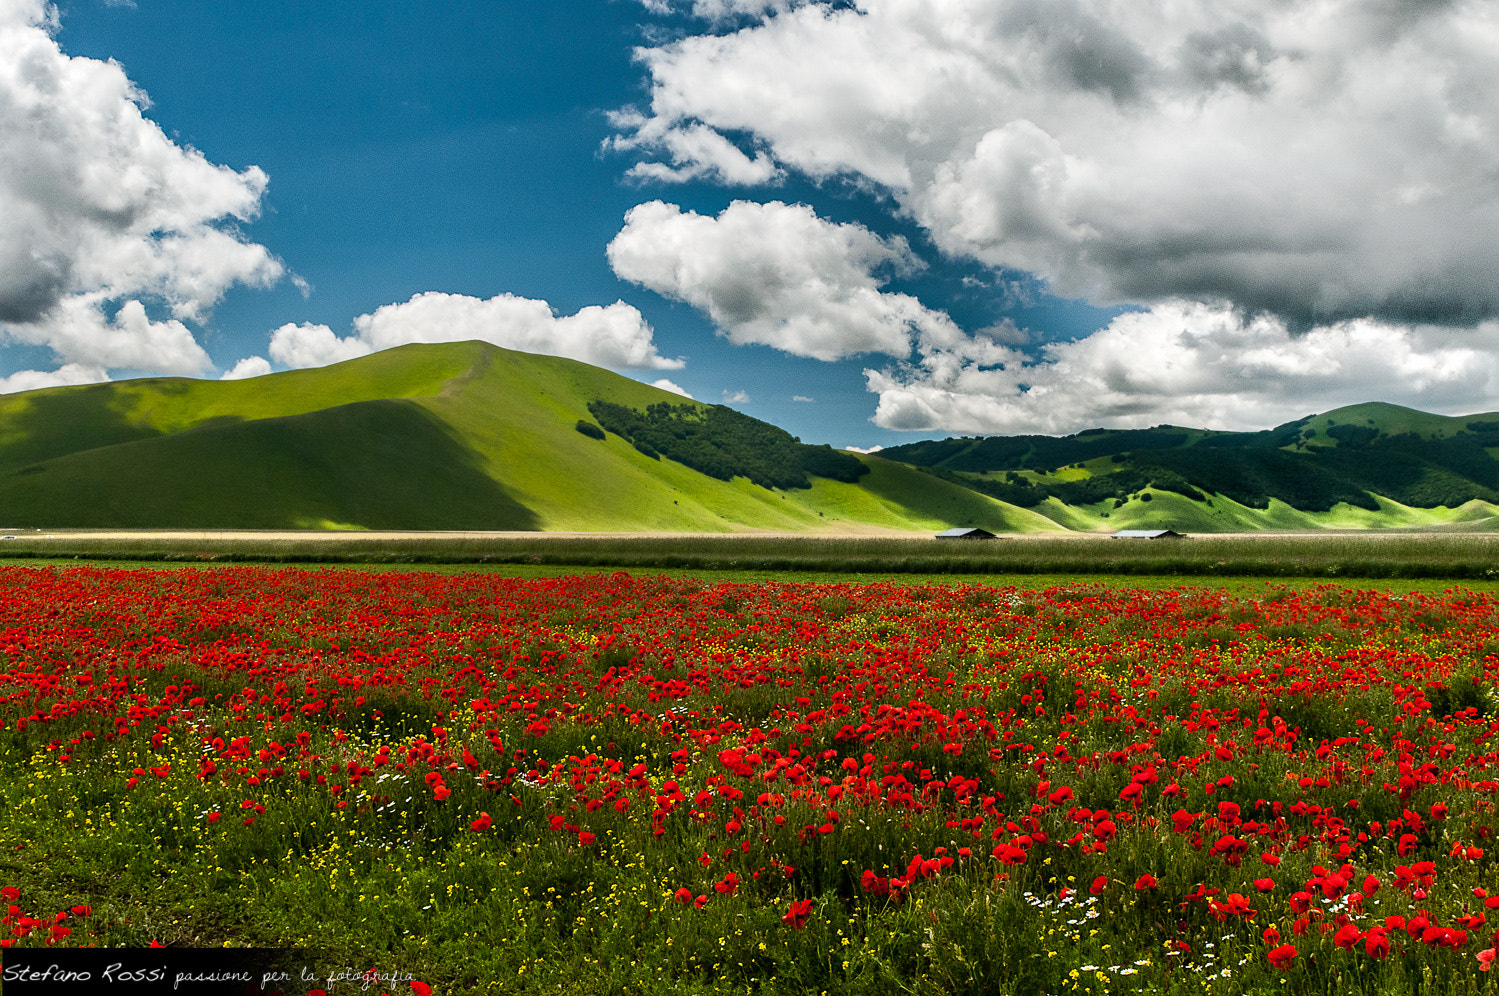 Photograph Red lake by Stefano Rossi on 500px